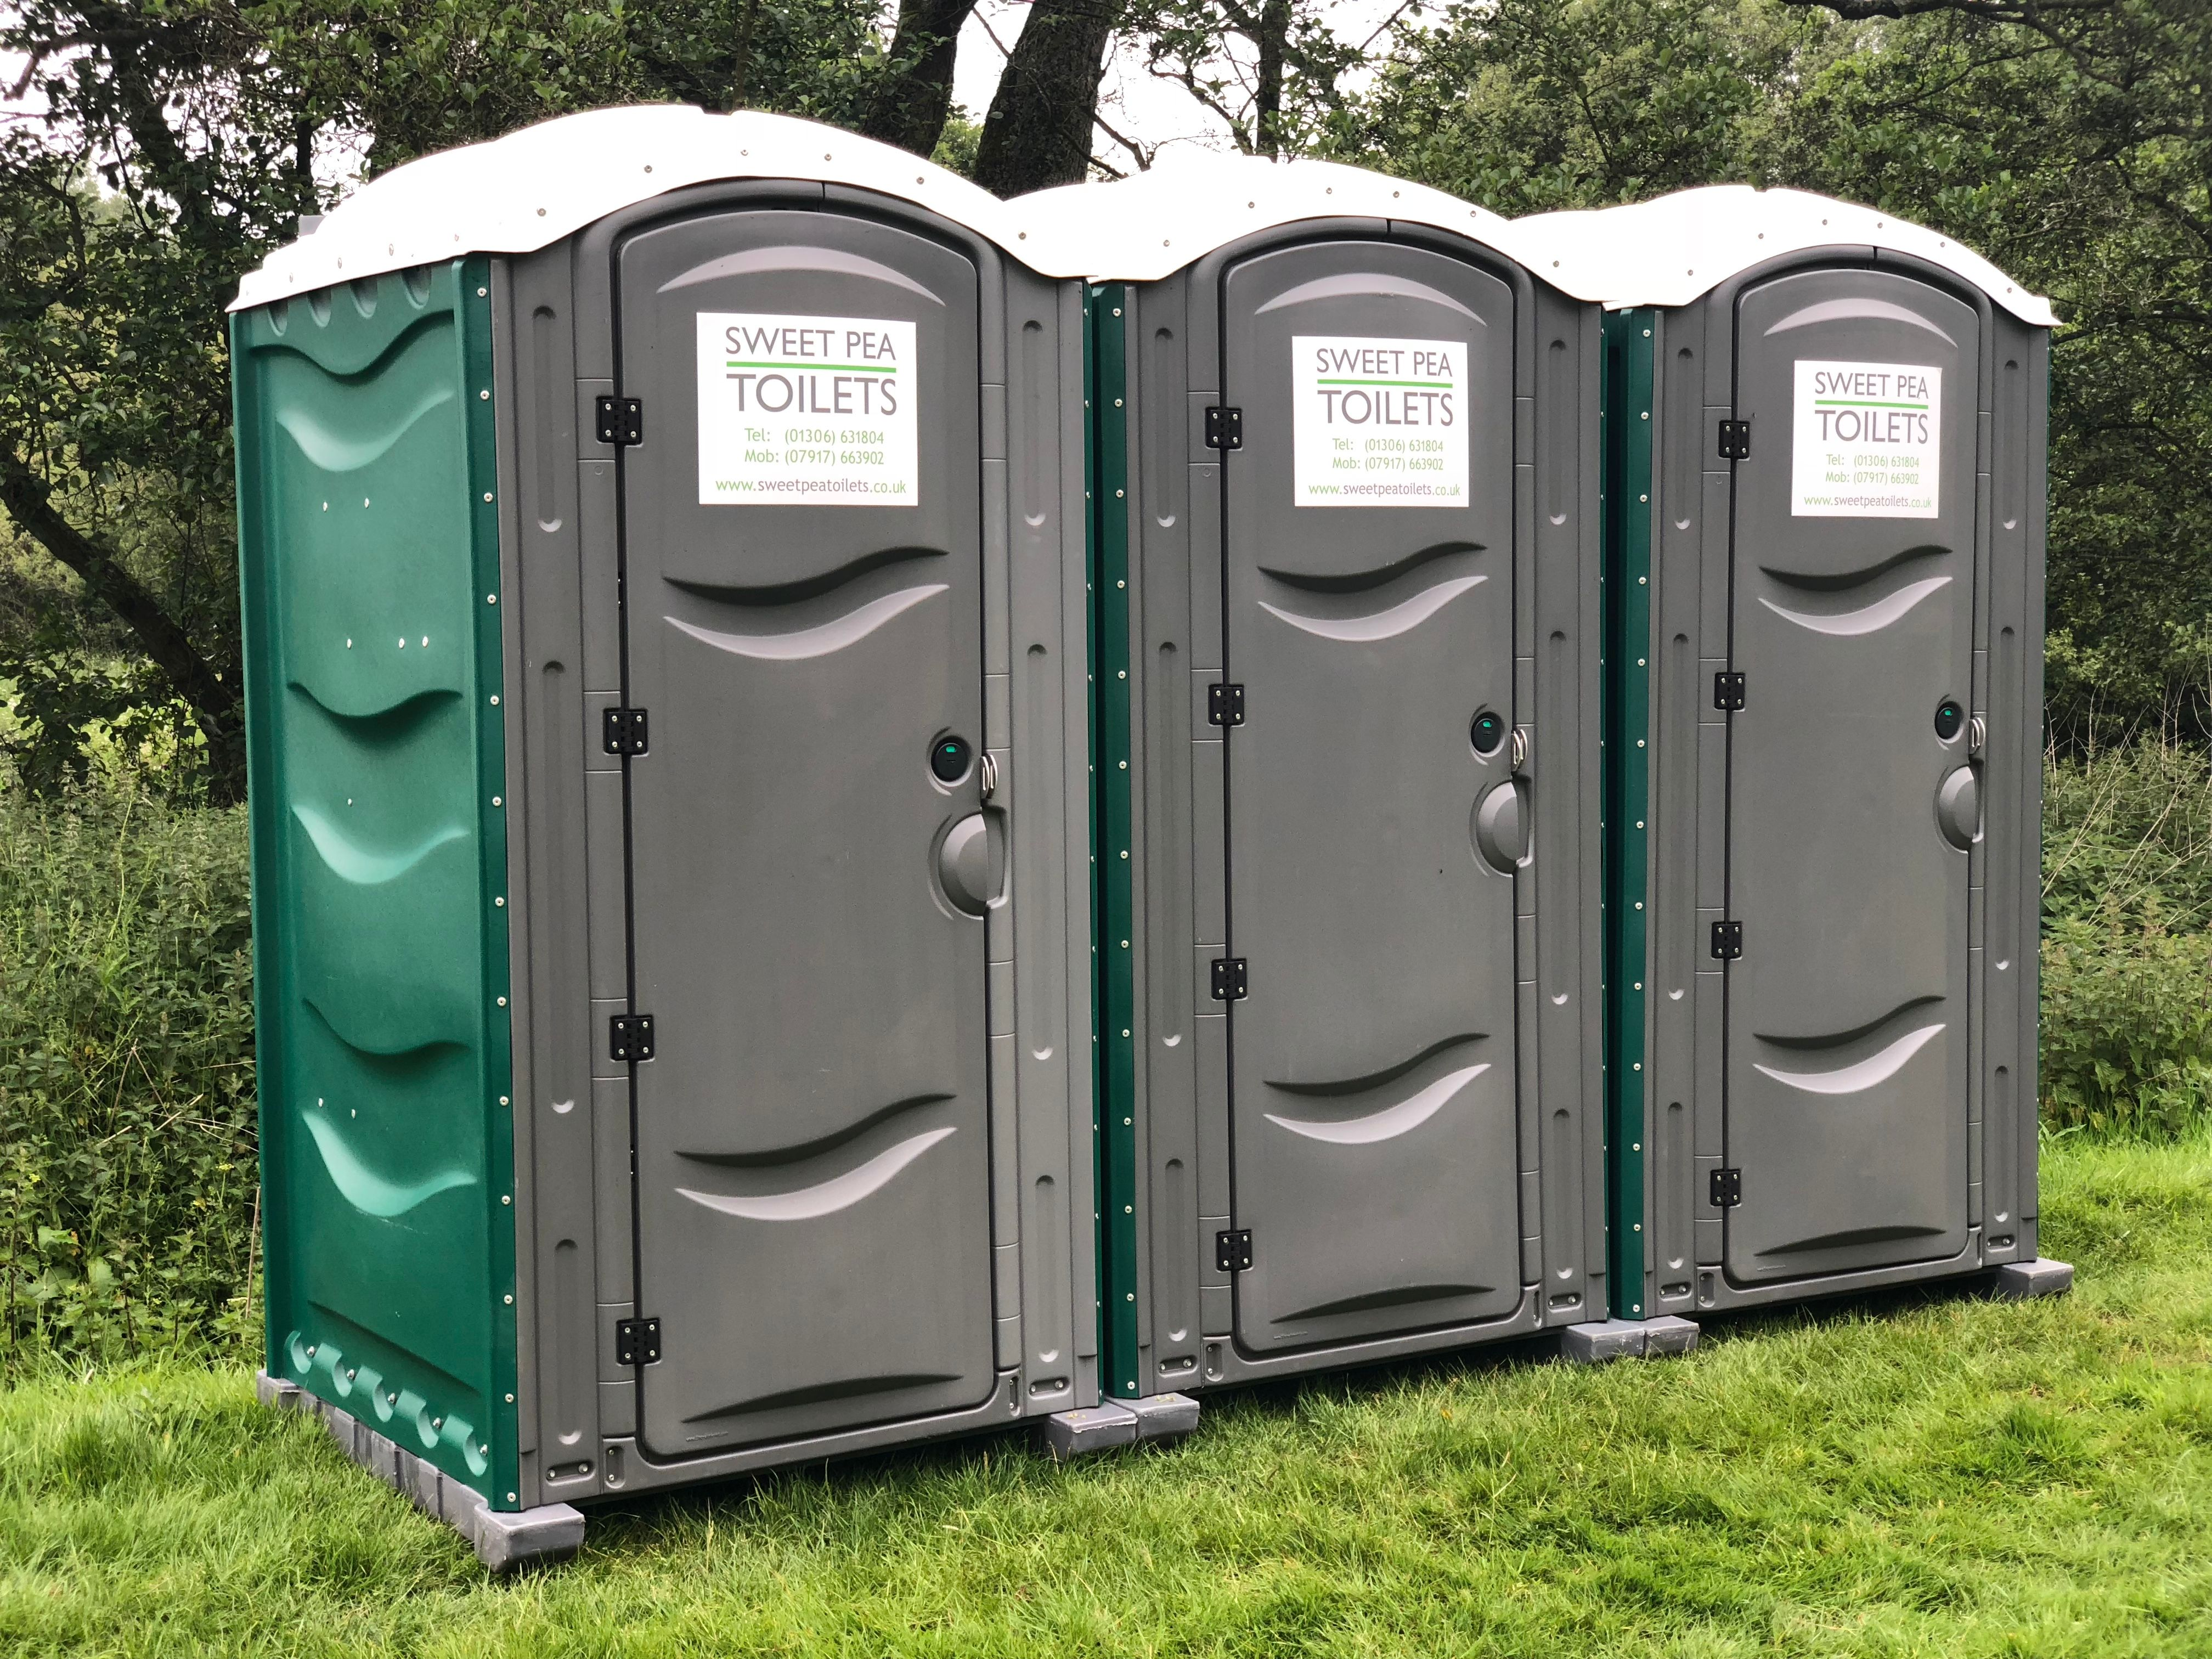 Three Portable Sweet Pea Toilets for hire